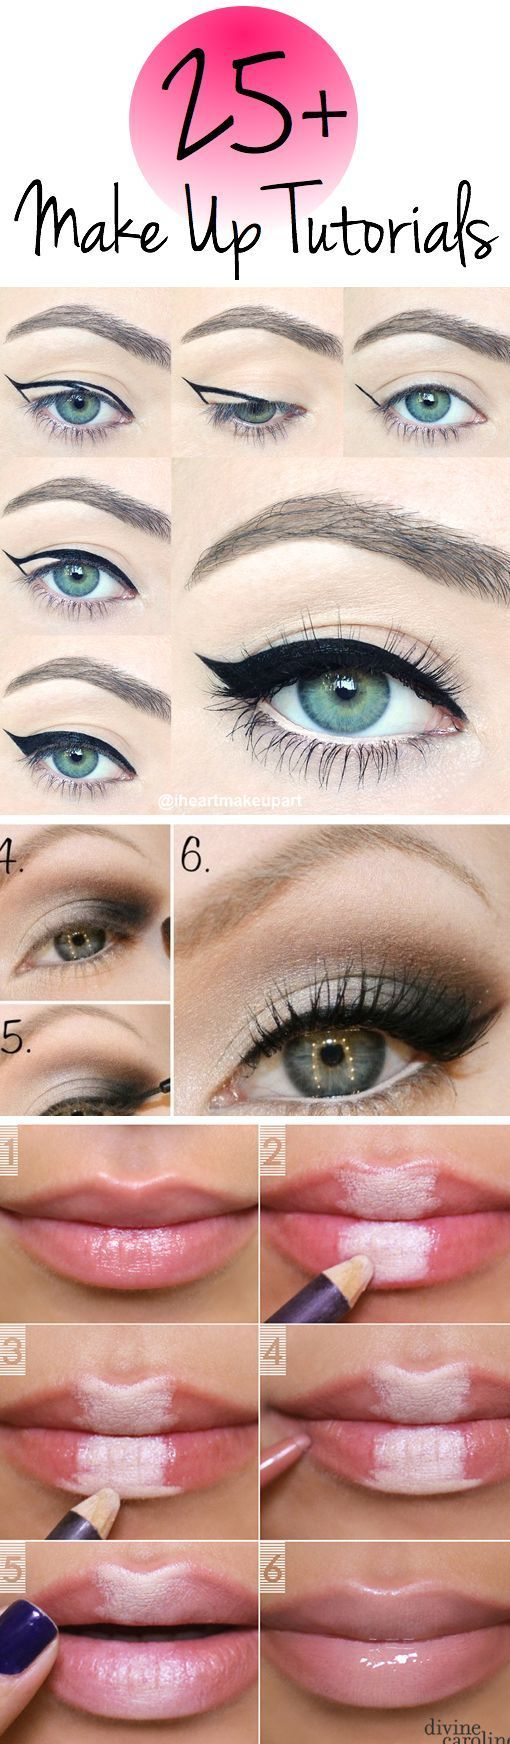 The 25+ Best How To Apply Eyeliner Ideas On Pinterest  How To Eyeliner,  Apply Eyeliner And Applying Eyeliner